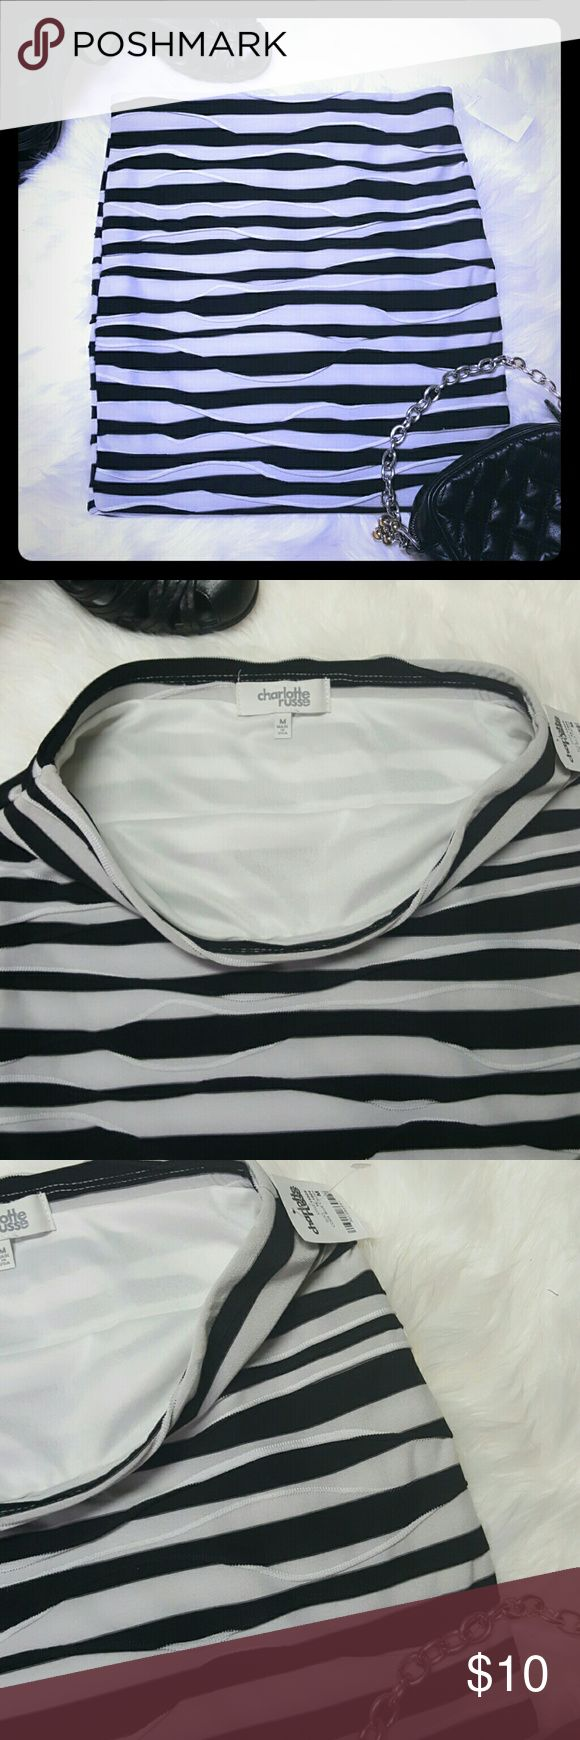 Charlotte Russe black and white body con skirt Fully lined. NWT. Size Medium. Has a wavy stitch design, bandage body con fit and look. Elastic waist. Charlotte Russe Skirts Mini